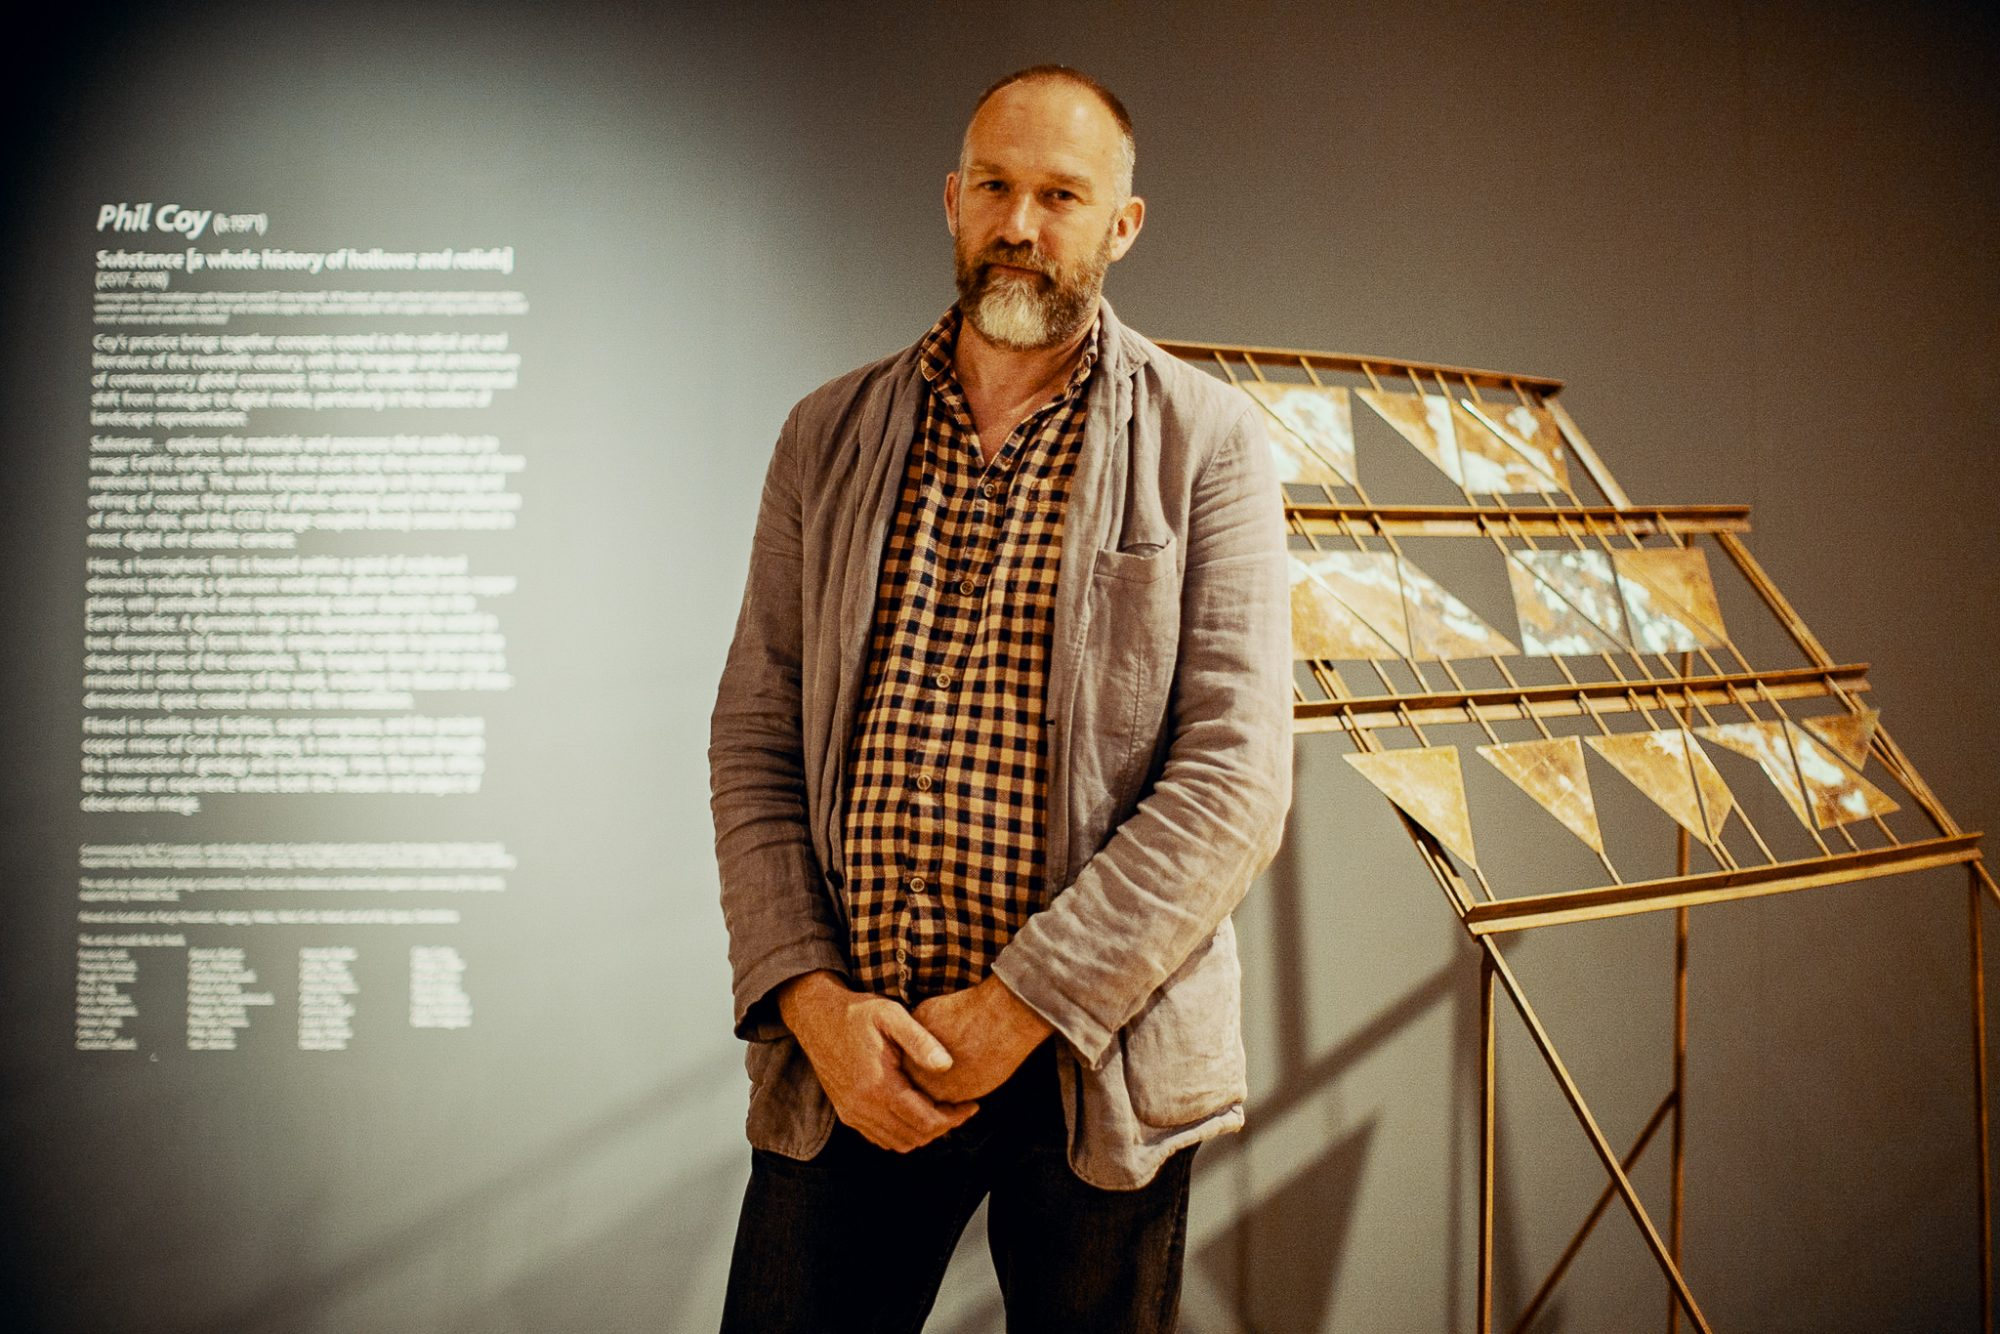 Phil Coy at the launch of Strata-Rock-Dust-Stars for York Mediale 2018 © York Mediale